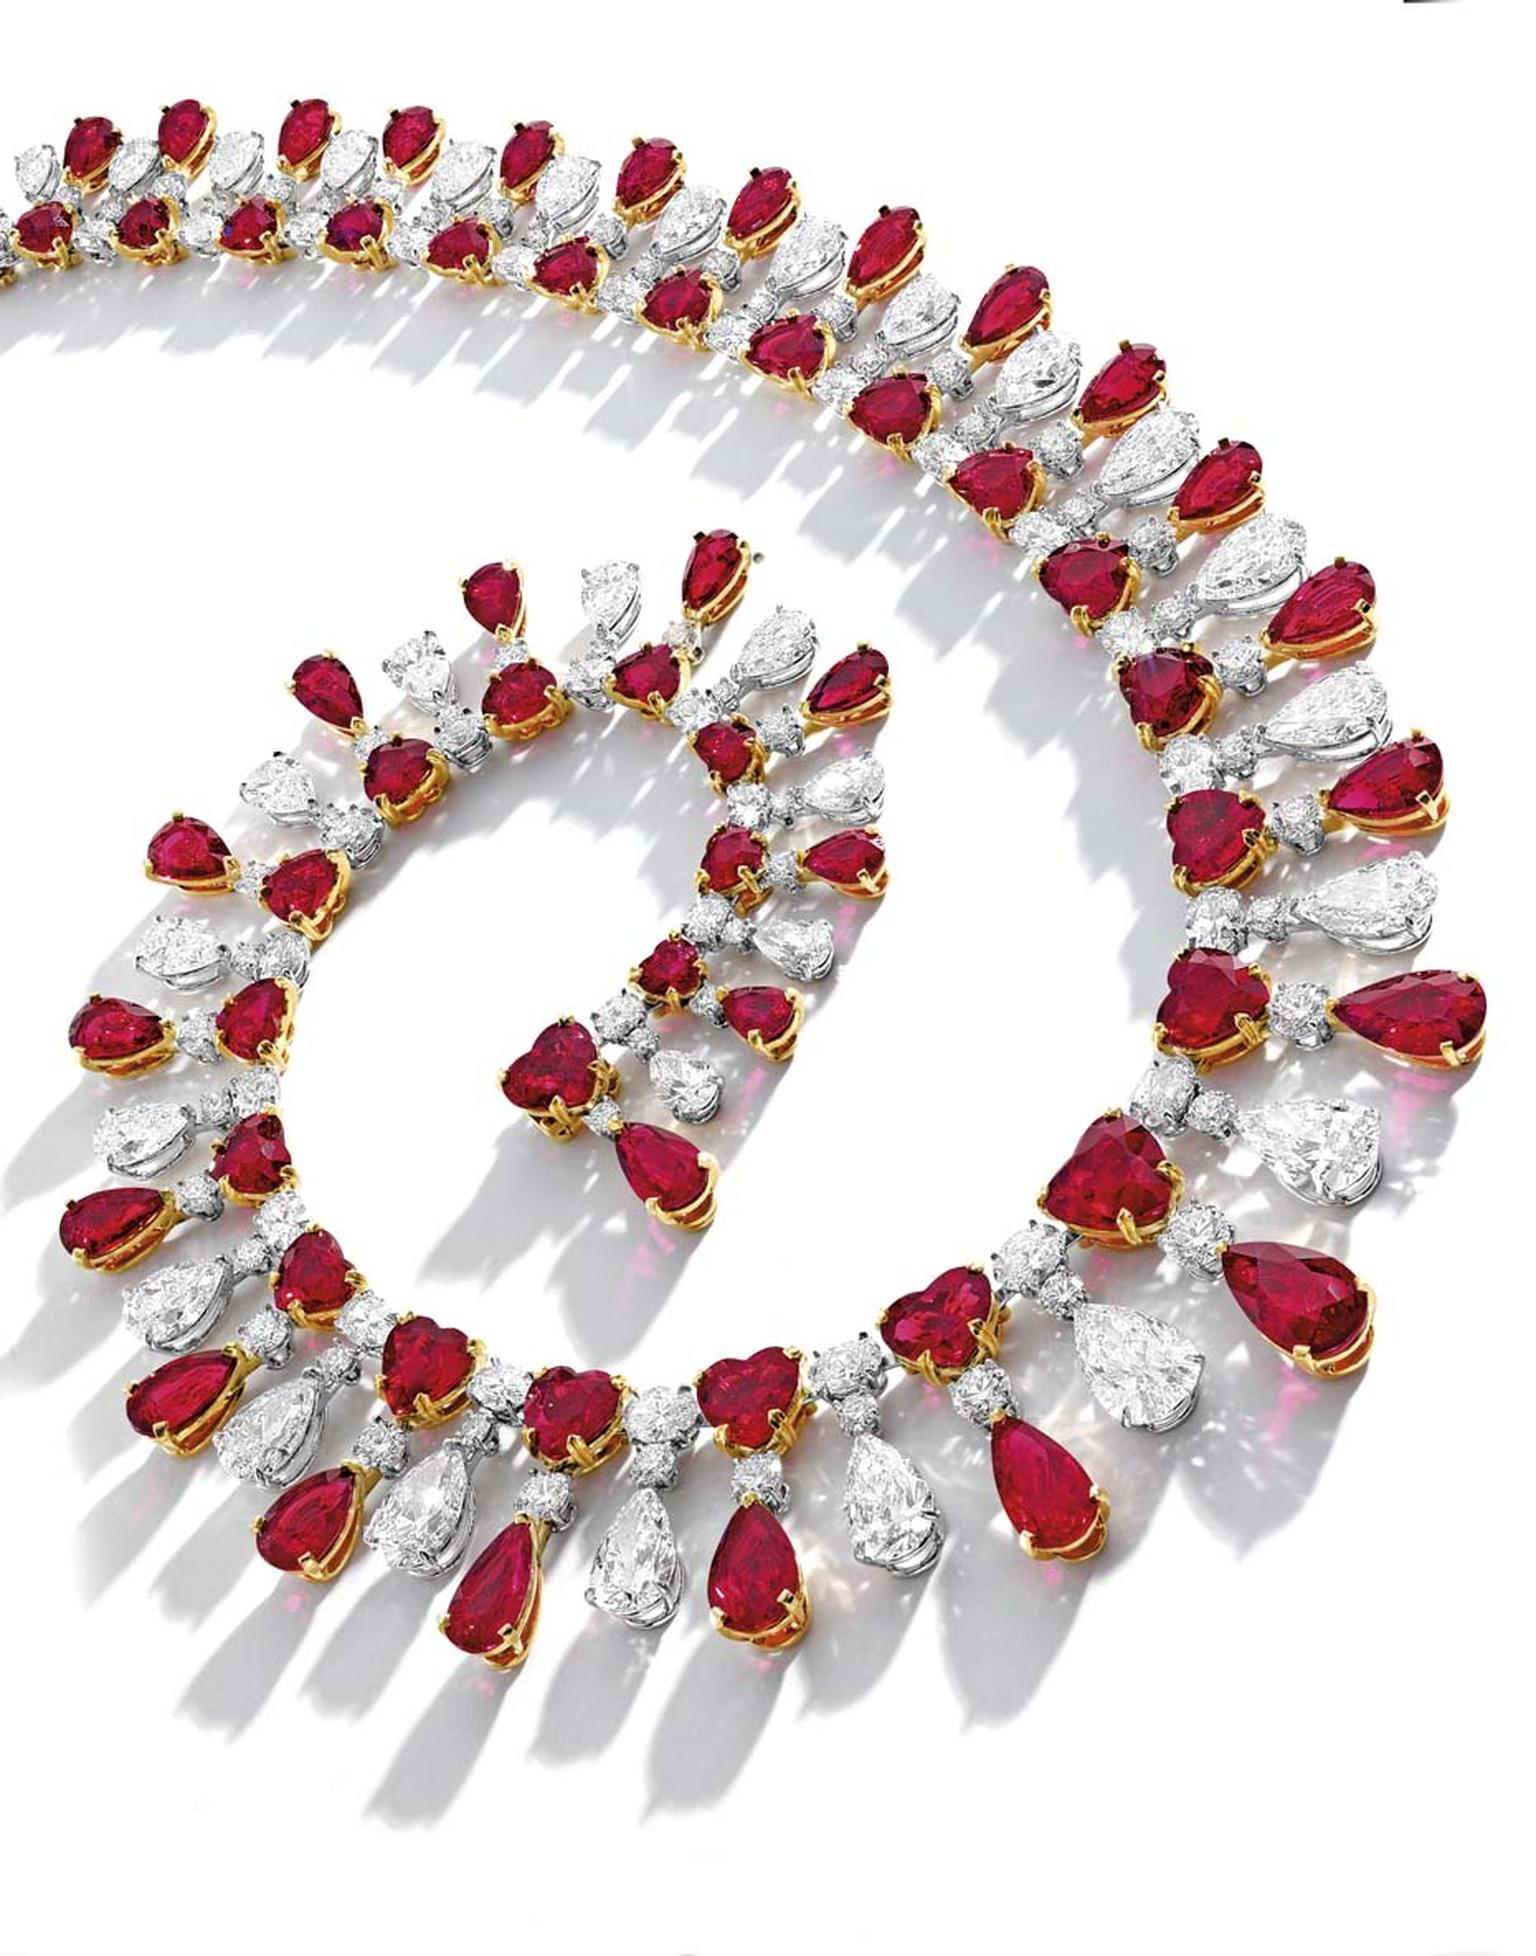 The Red Emperor necklace featuring Burmese rubies and diamonds. The rubies include fine needle-shaped inclusions, which perfectly diffuse light and is further enhanced by brilliant-cut, pear-shaped and oval diamonds. Sold at Sotheby's Hong Kong for US$9,9